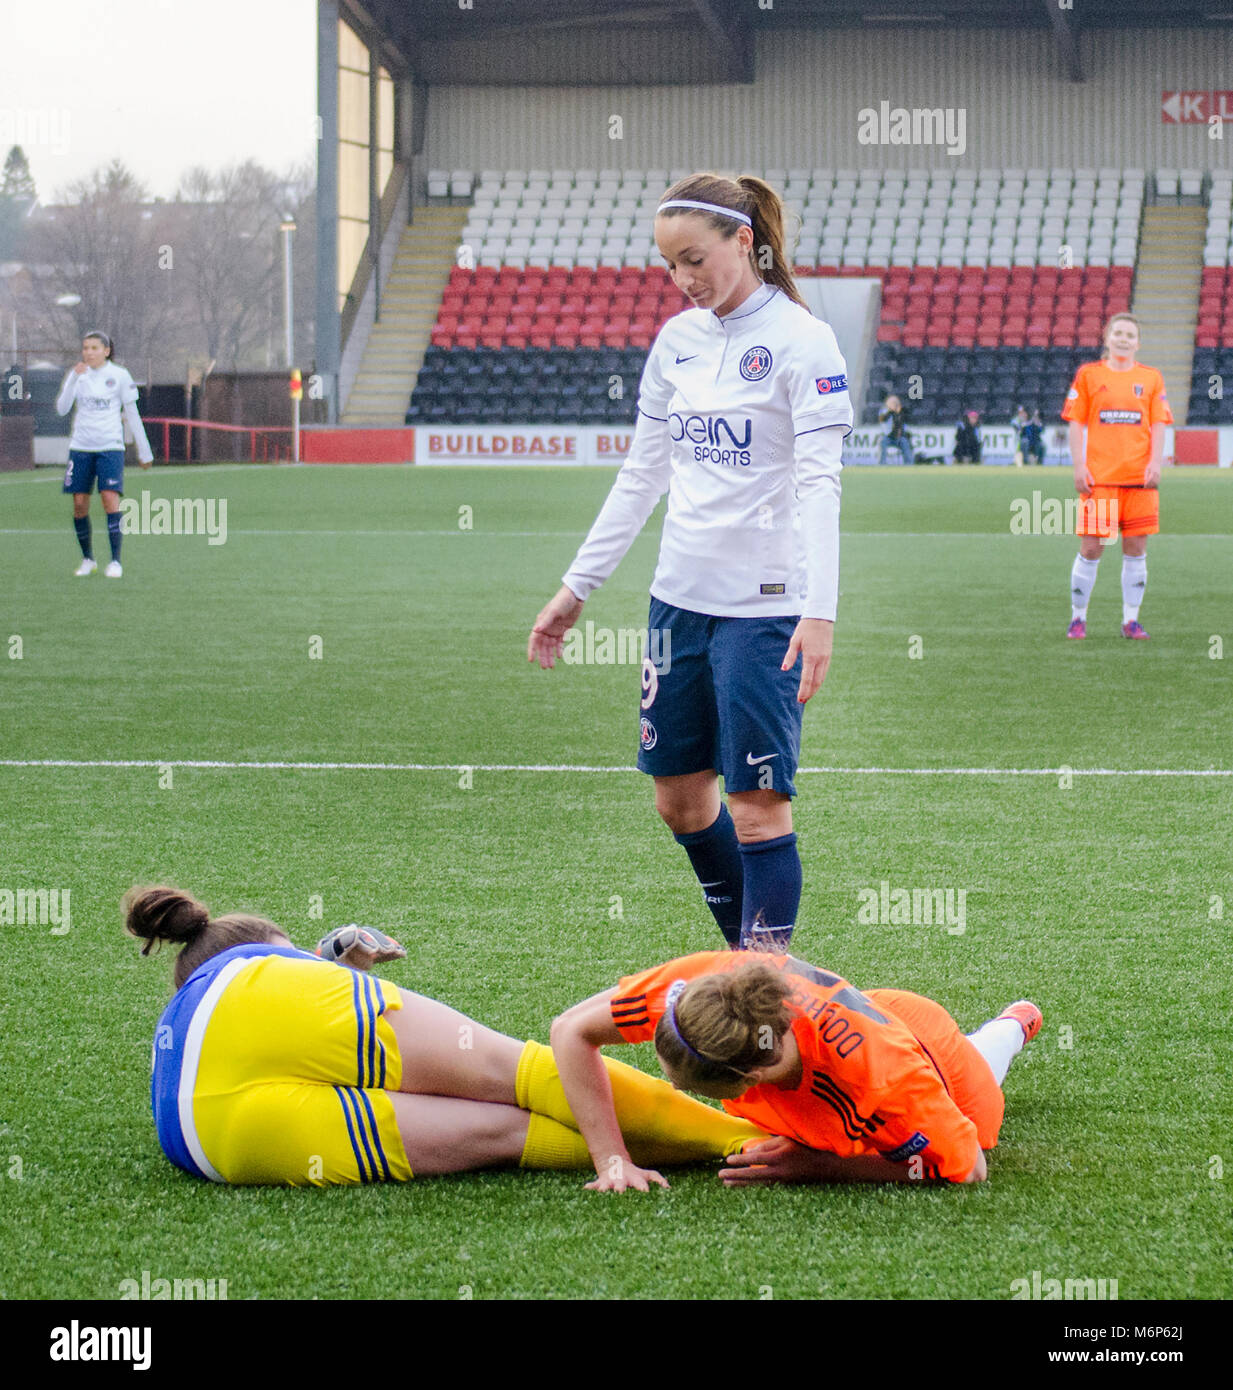 AIRDRIE, SCOTLAND - MARCH 22nd 2015: PSG player, Kosovare Asllani looks down at two Glasgow city players. - Stock Image